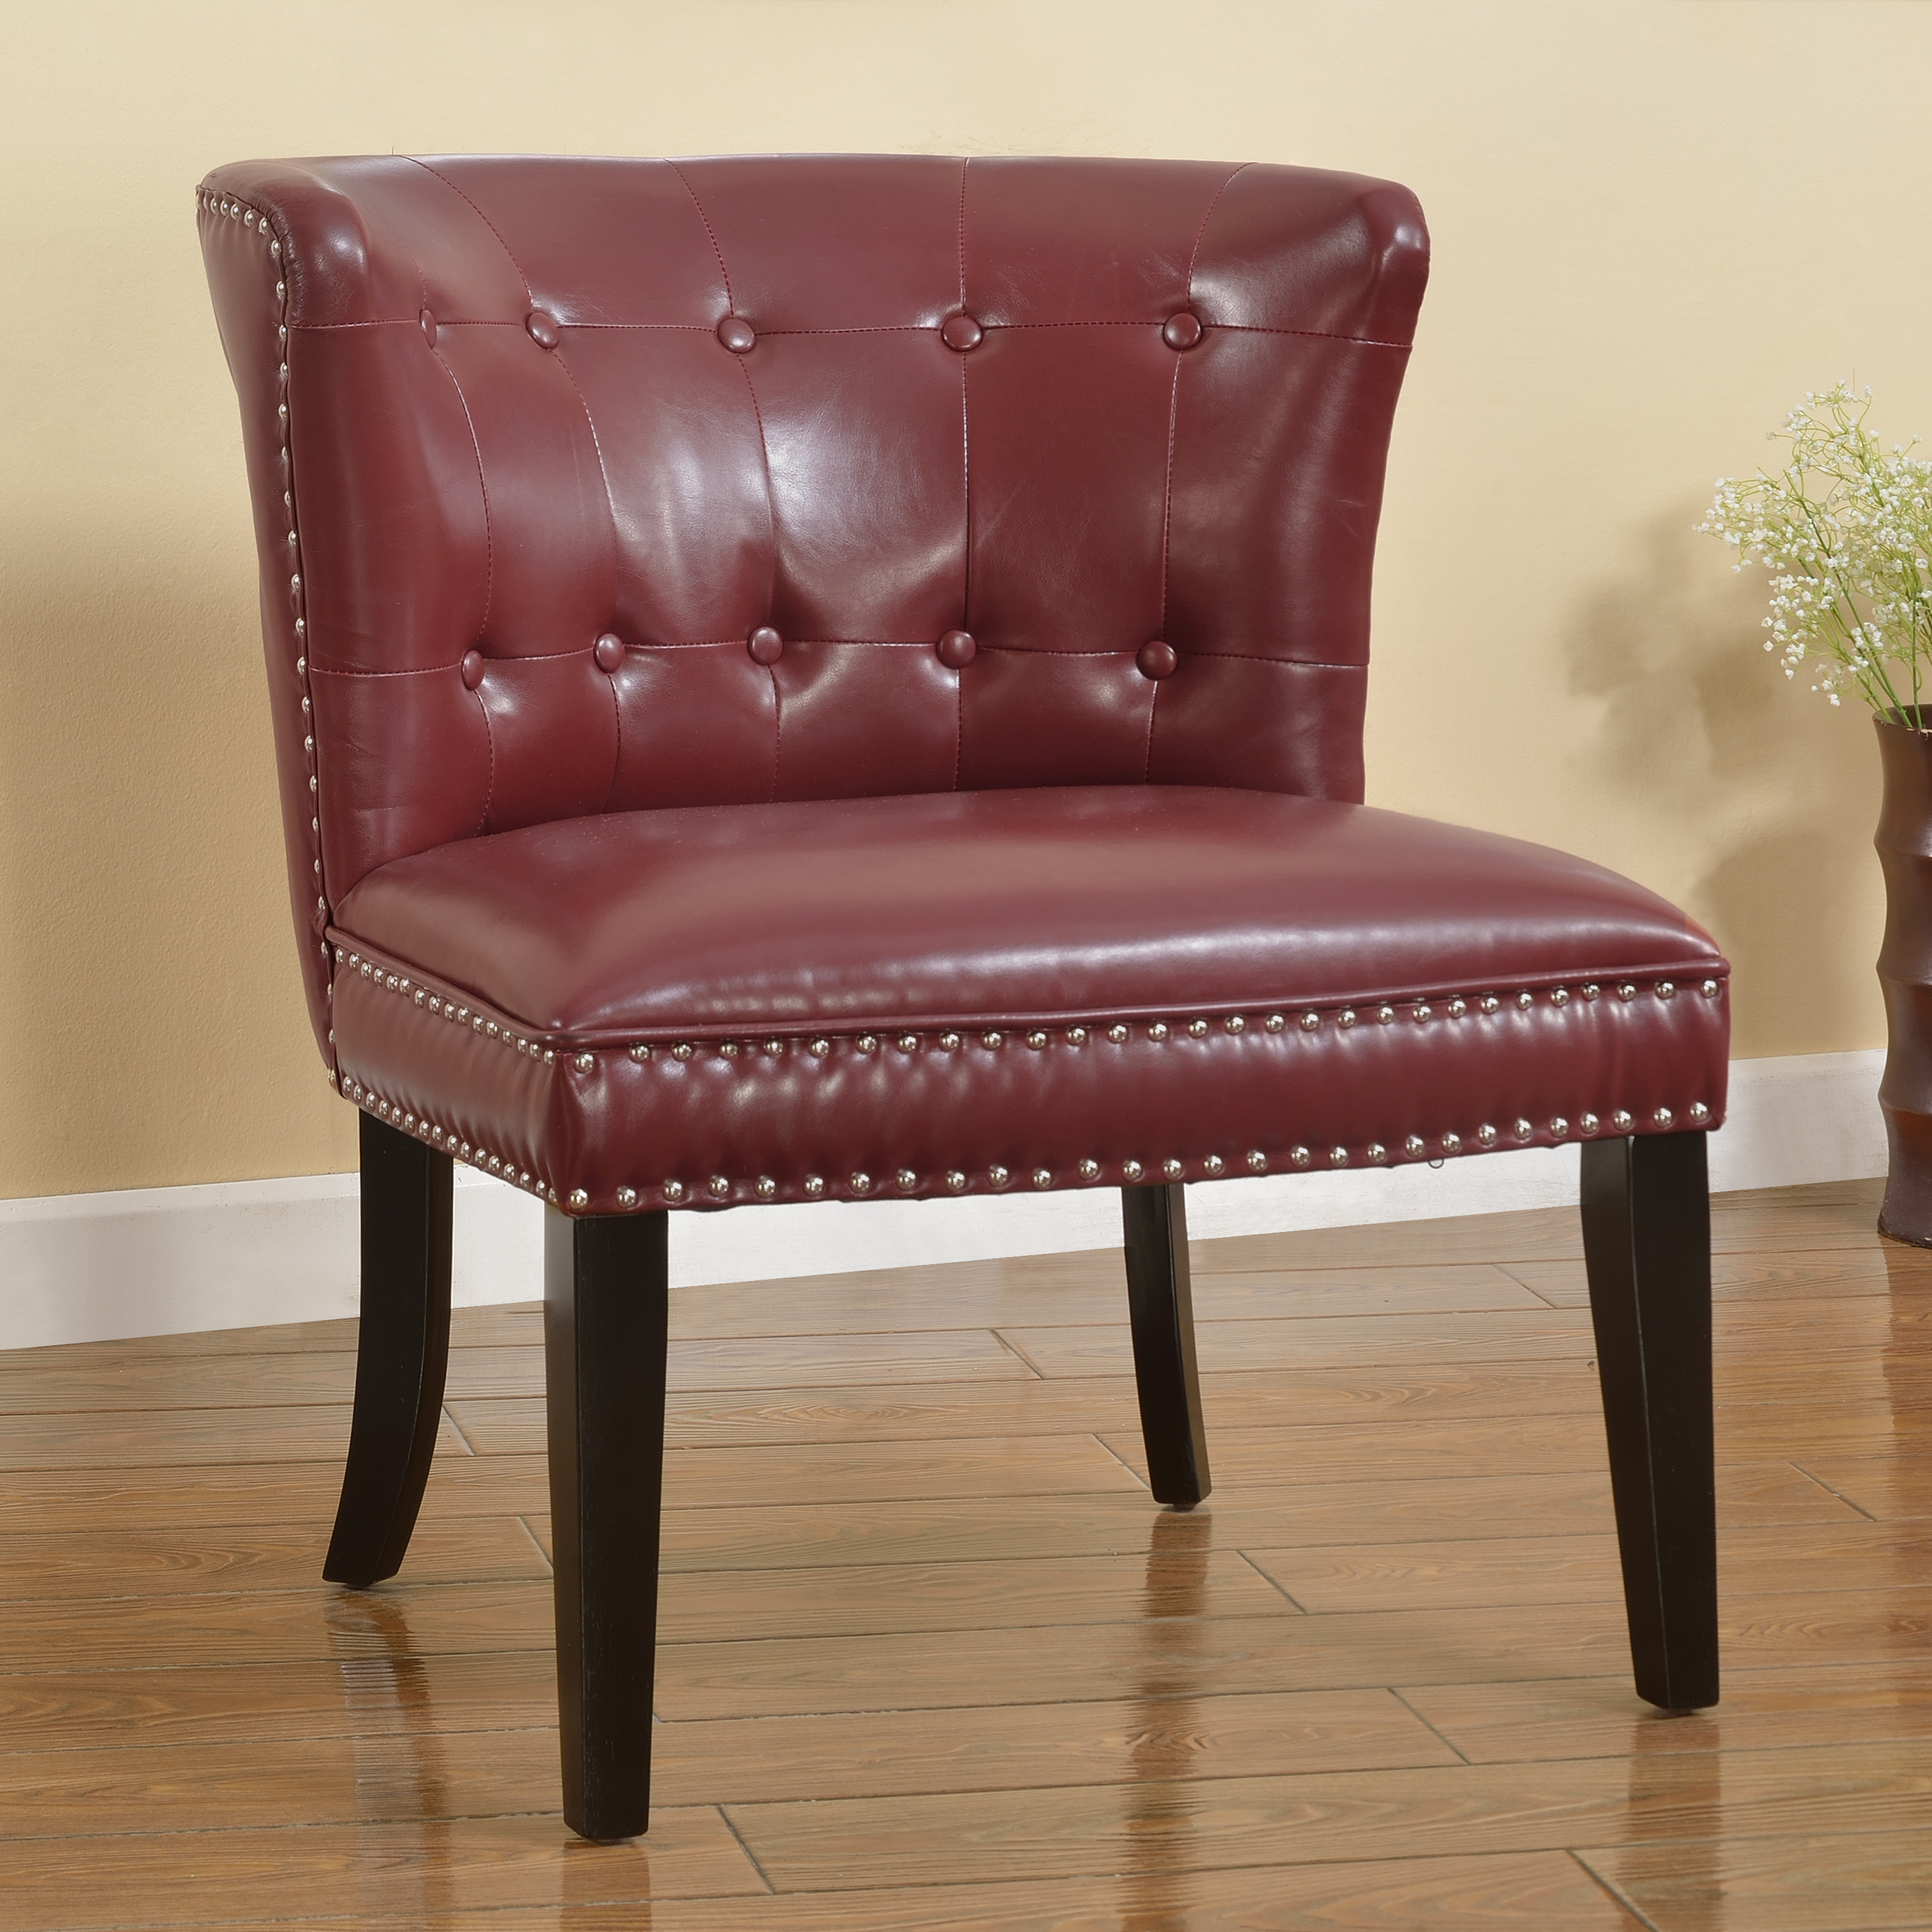 Best Master Furniture's Regal Tufted Faux Leather Accent Chair, Set of 2, Multiple Colors Available